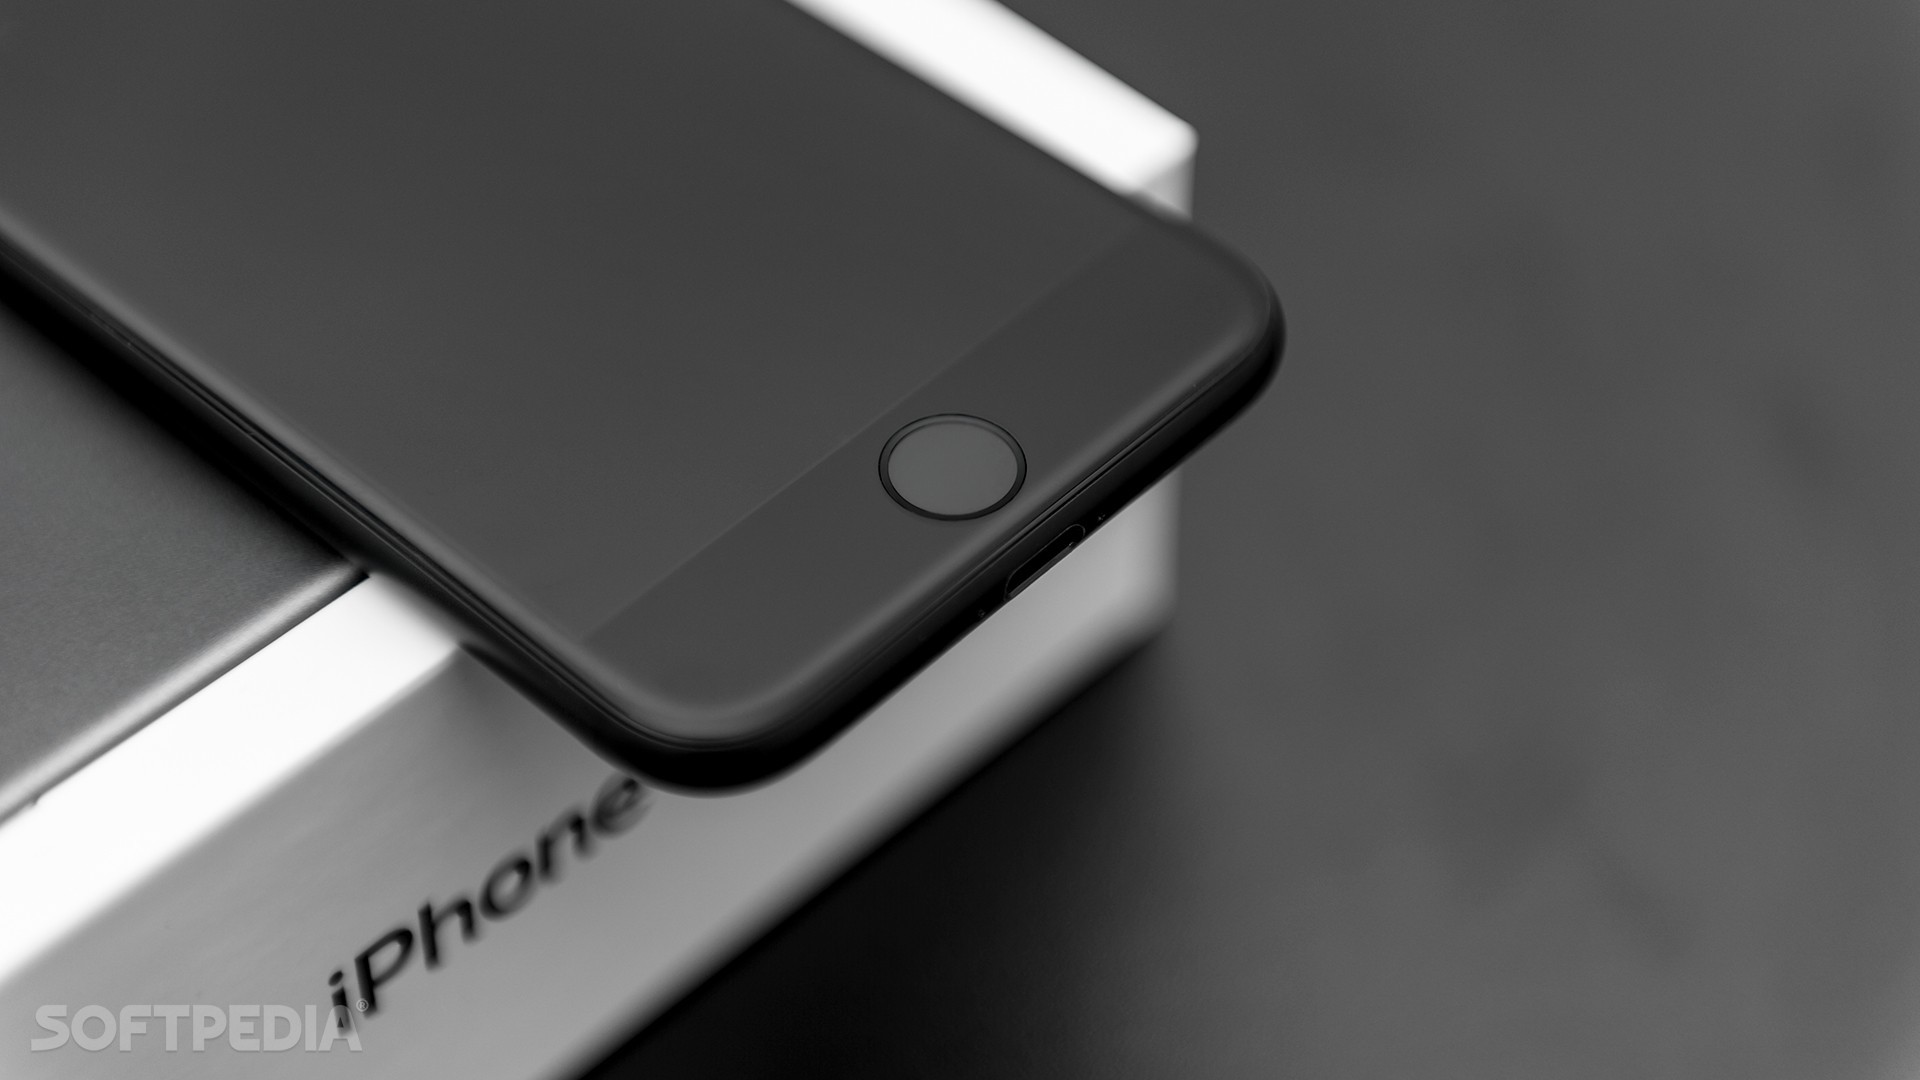 Apple Might Still Be Planning an iPhone with Fingerprint Sensor in